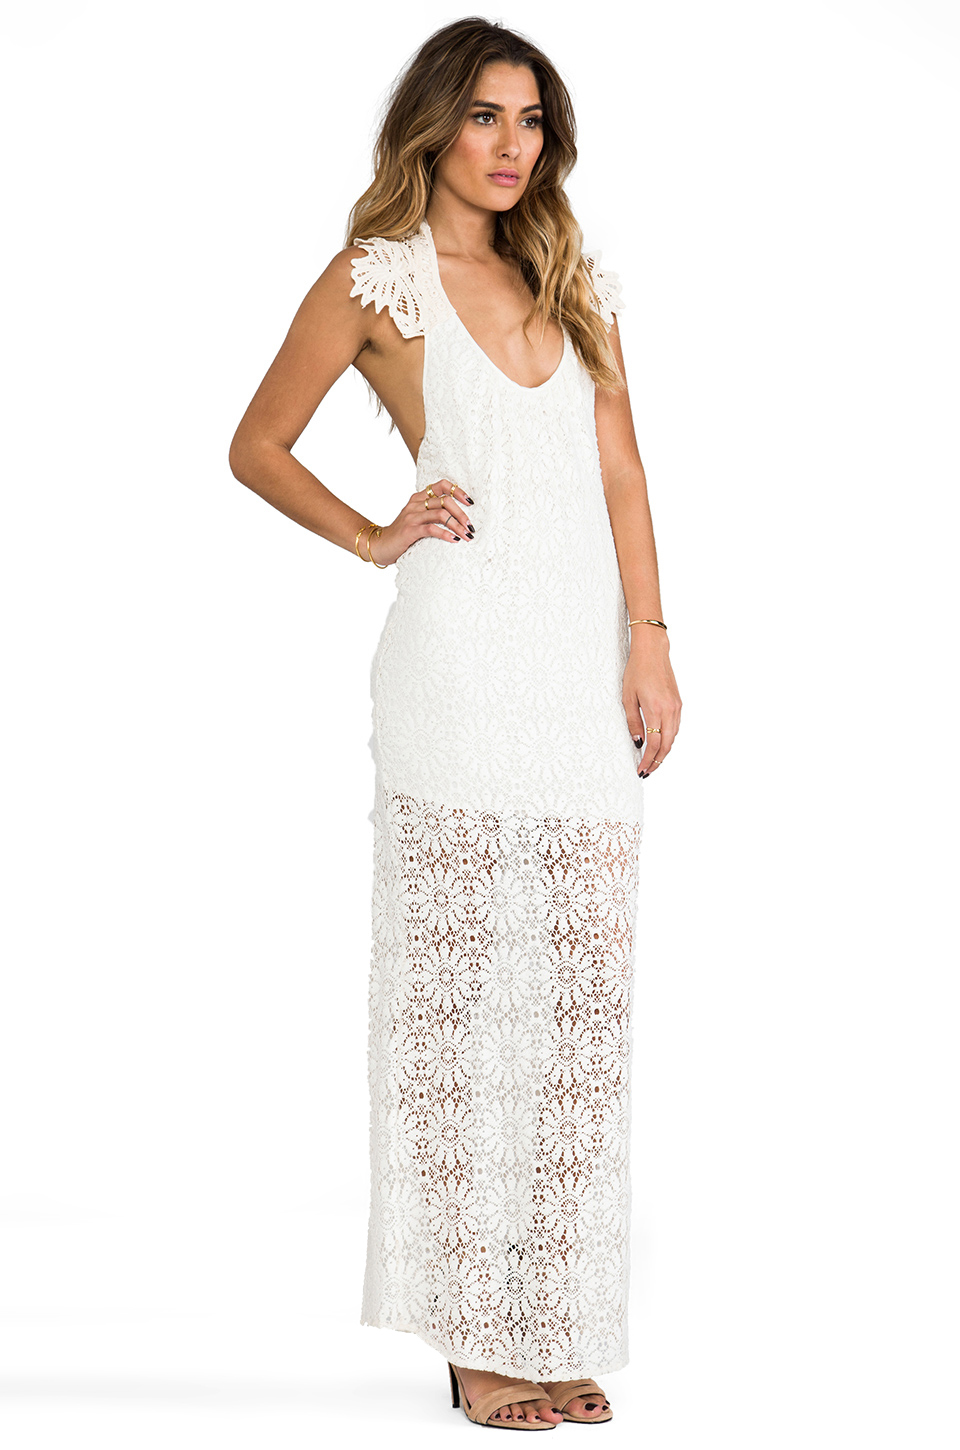 Jen's Pirate Booty Freedom Maxi Dress in OG Lace